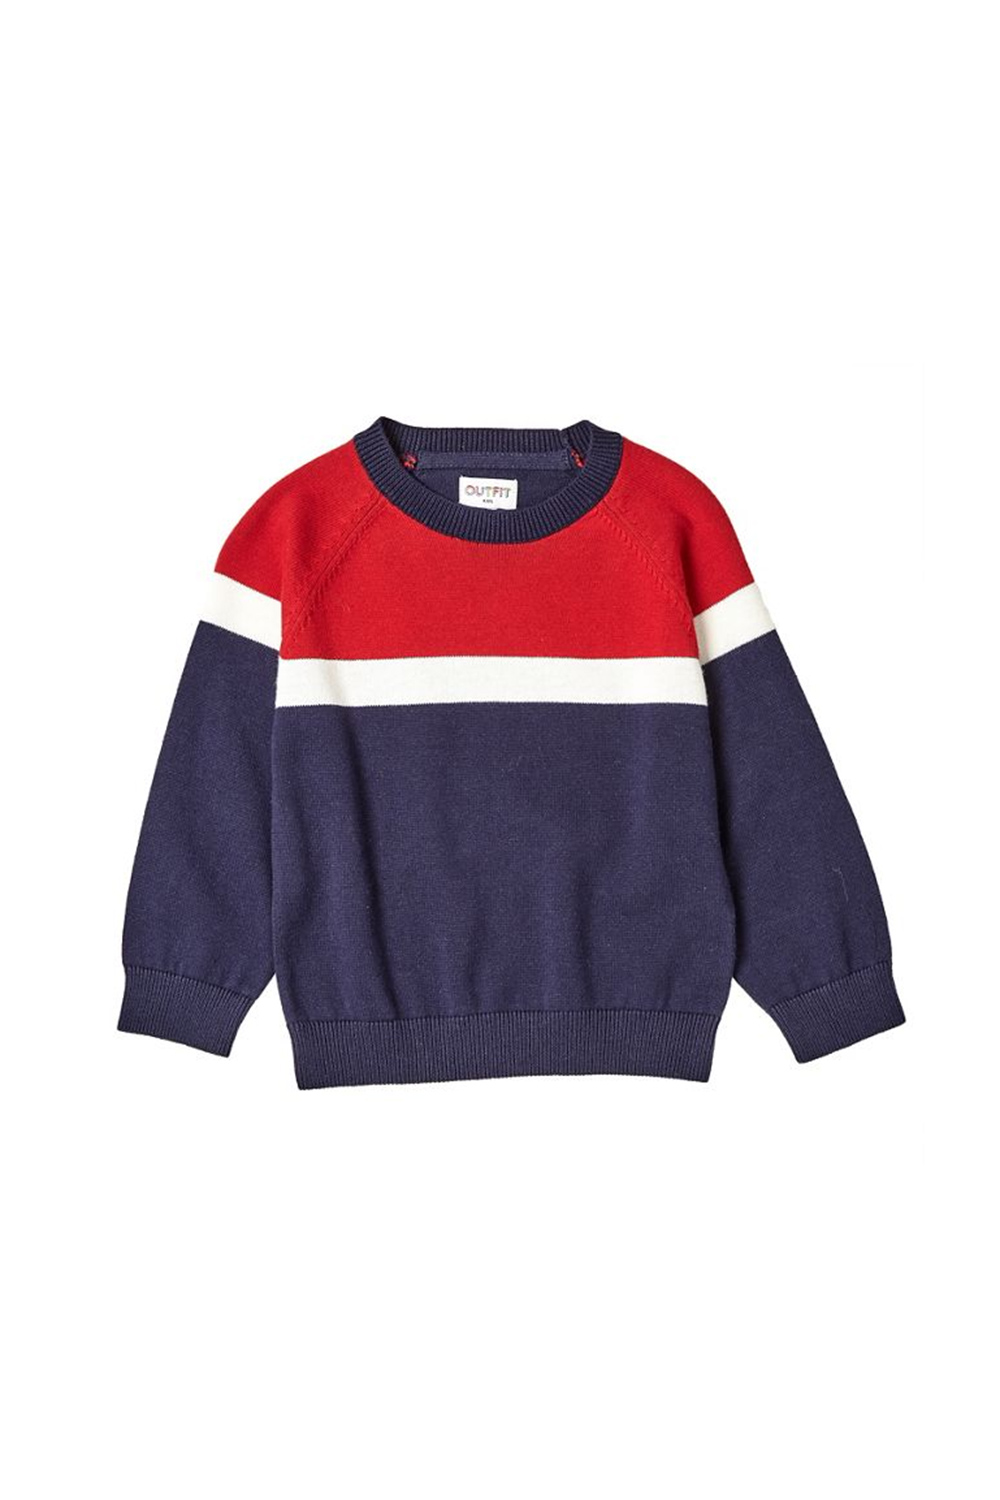 Children\'s Clothes That Are So Cool We Wish They Came In Adult Size